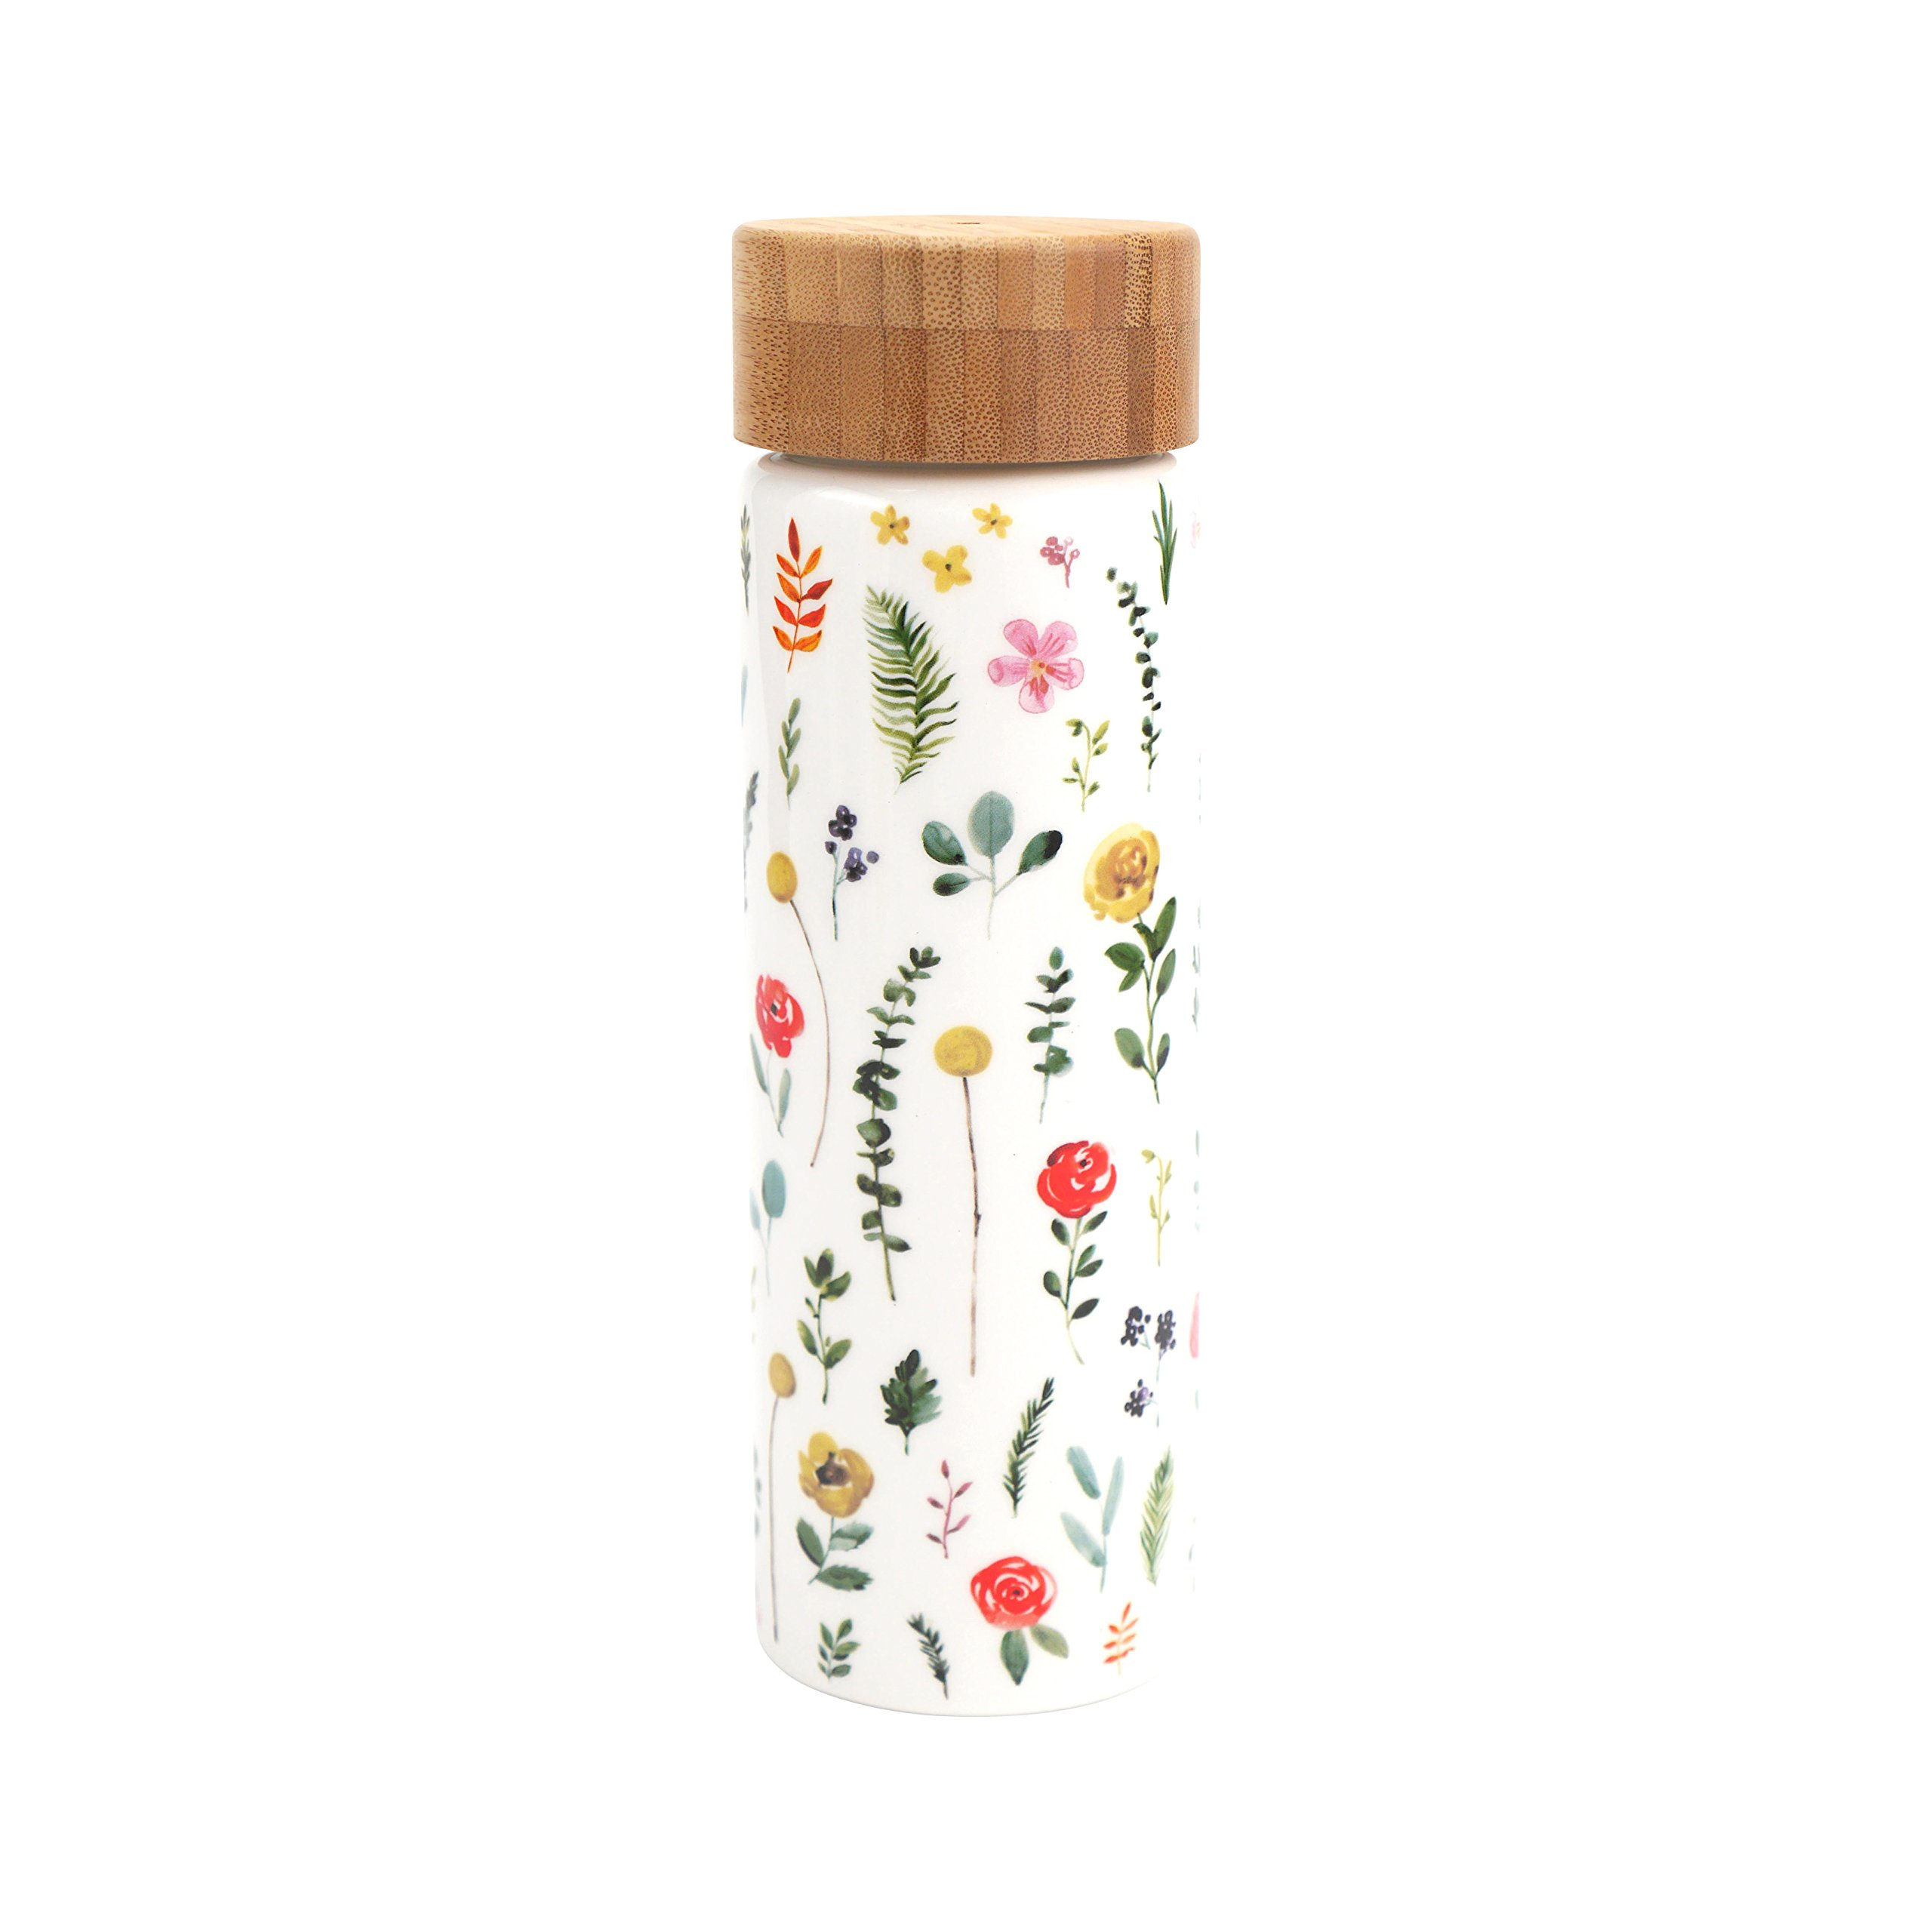 Hallmark Home Floral Ceramic Water Bottle